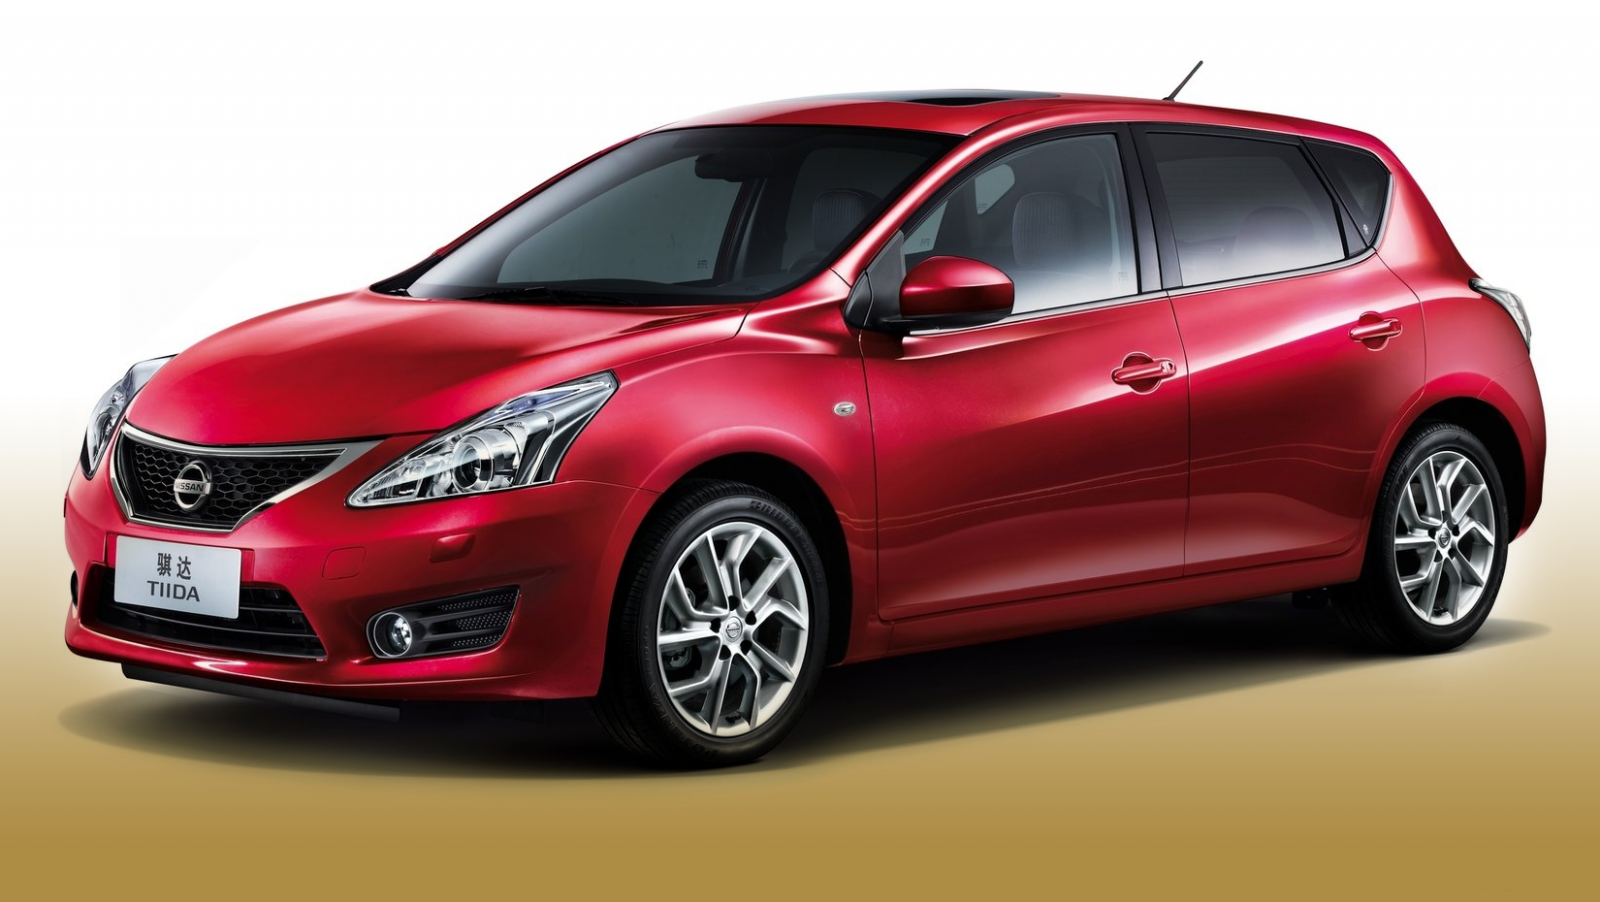 nissan tiida 2013 wallpaper